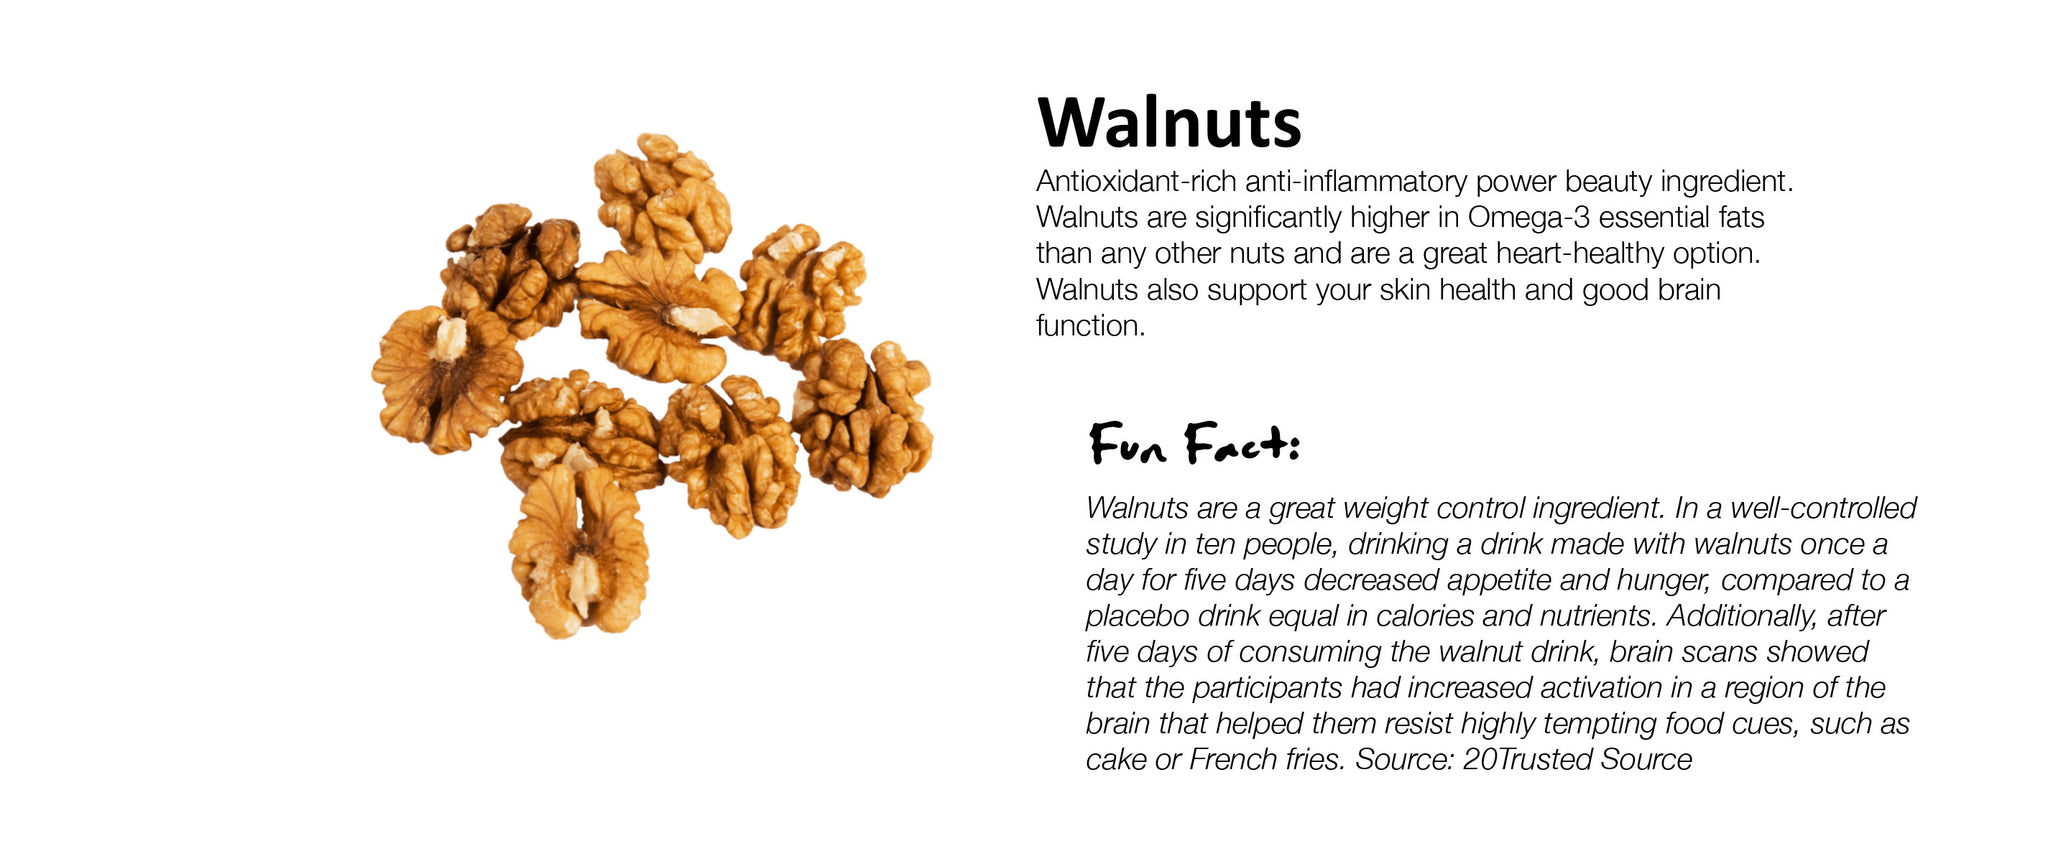 Walnuts Antioxidant-rich anti-inflammatory power beauty ingredient. Walnuts are significantly higher in Omega-3 essential fats than any other nuts and are a great heart-healthy option. Walnuts also support your skin health and good brain function.